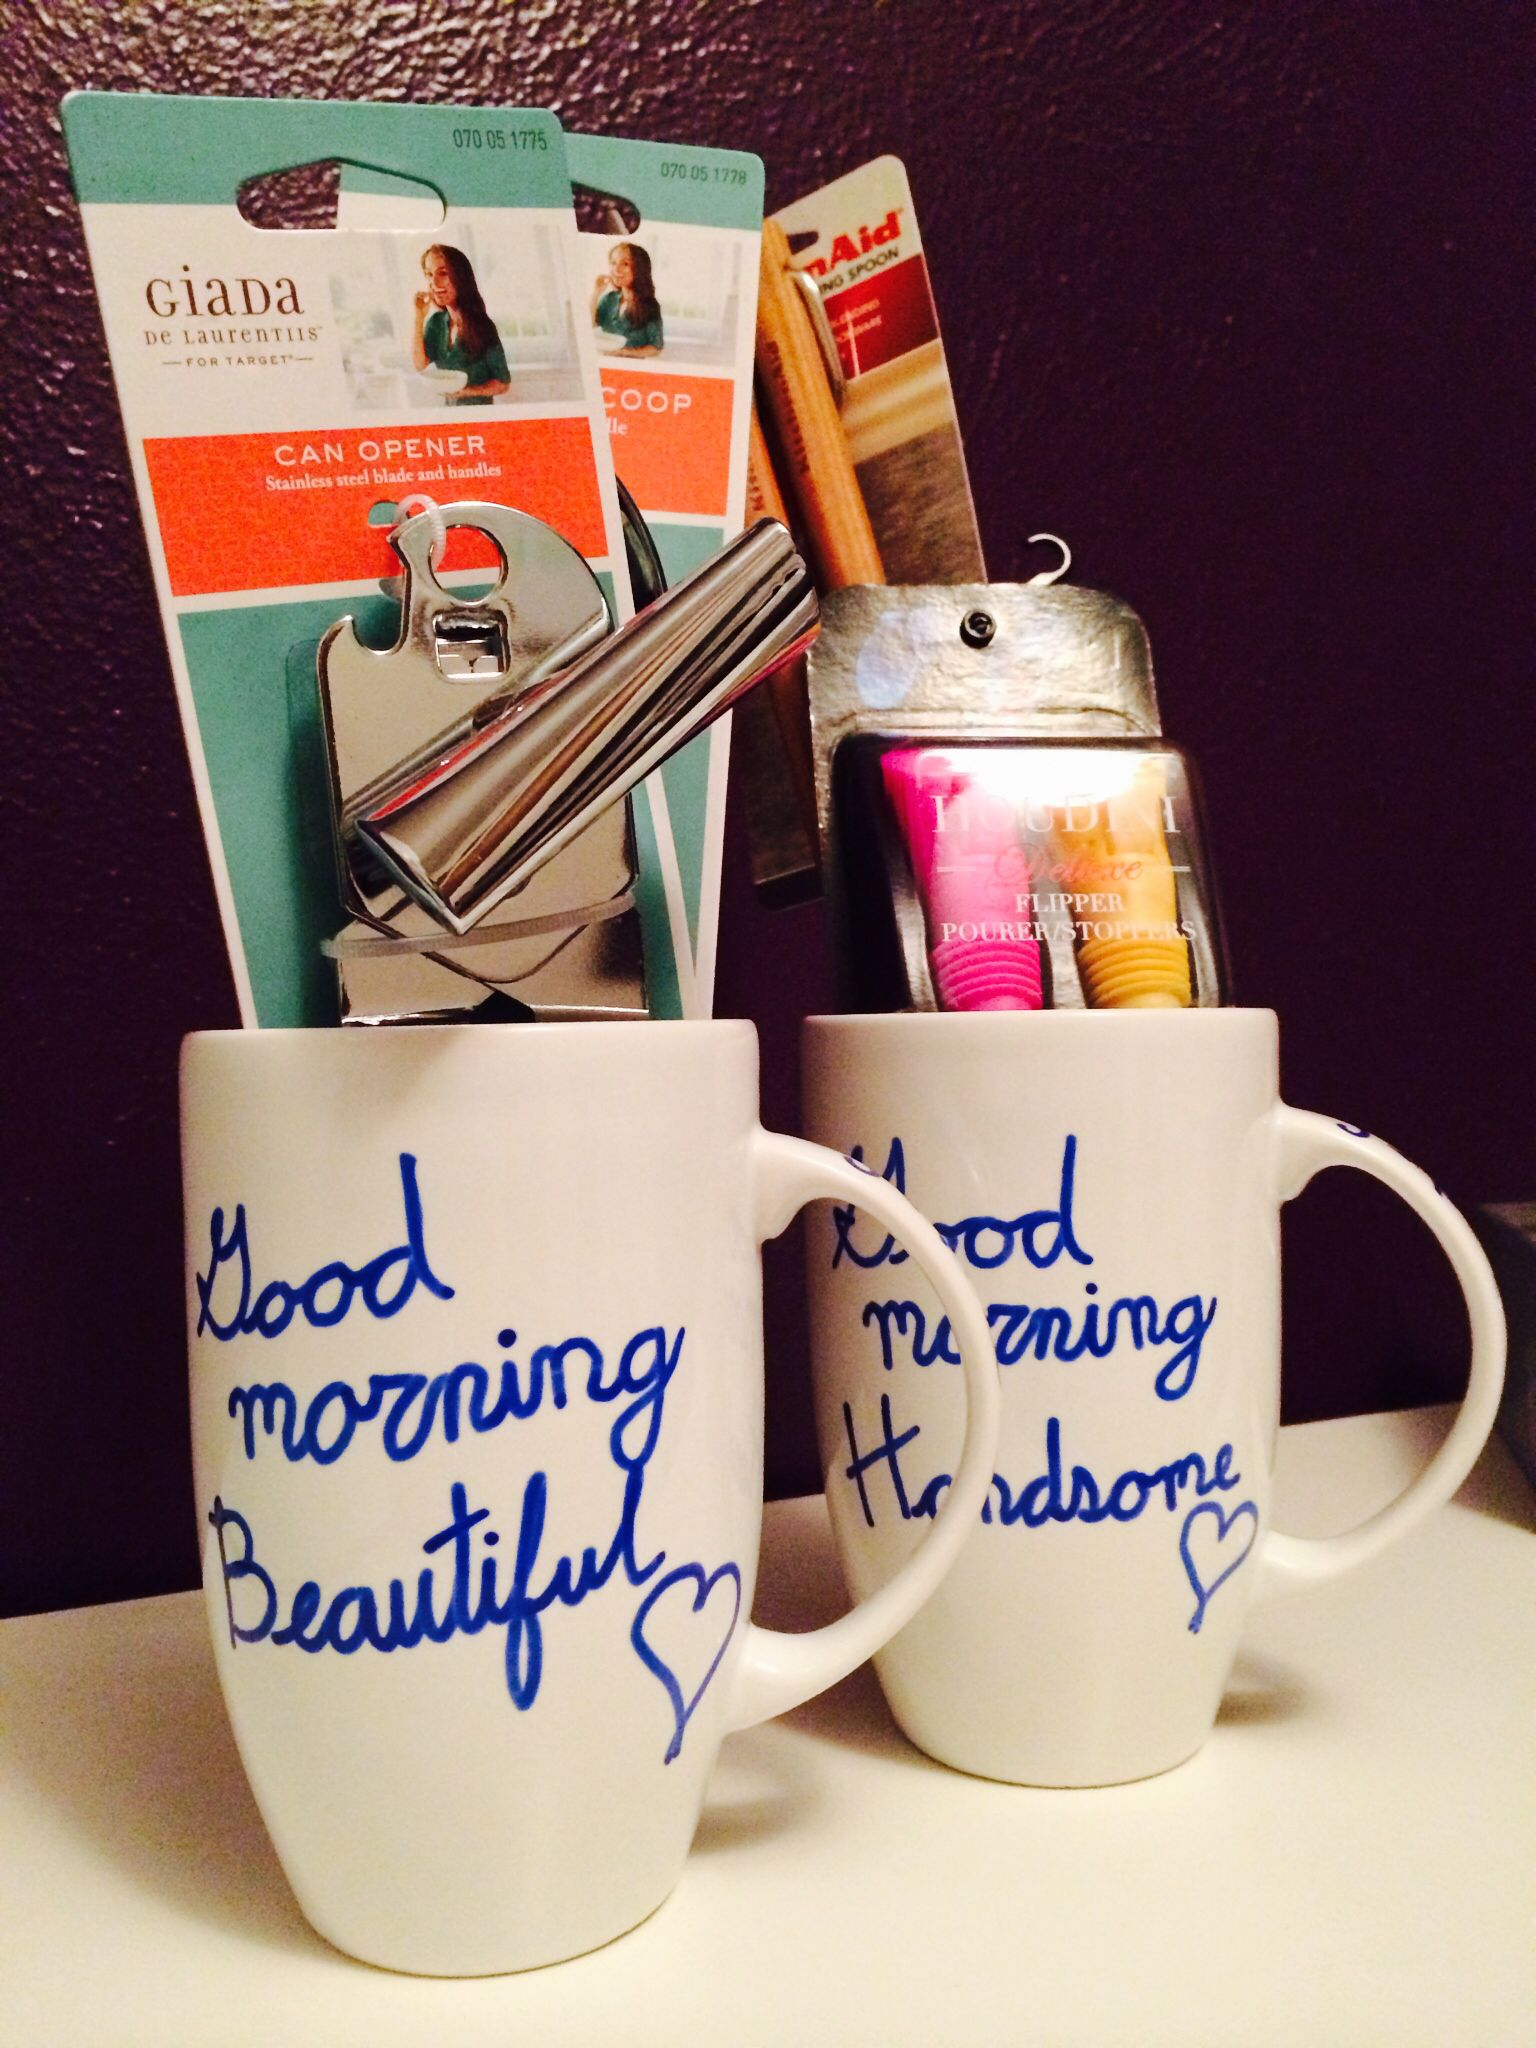 Bridal shower gift his and hers coffee mugs filled with